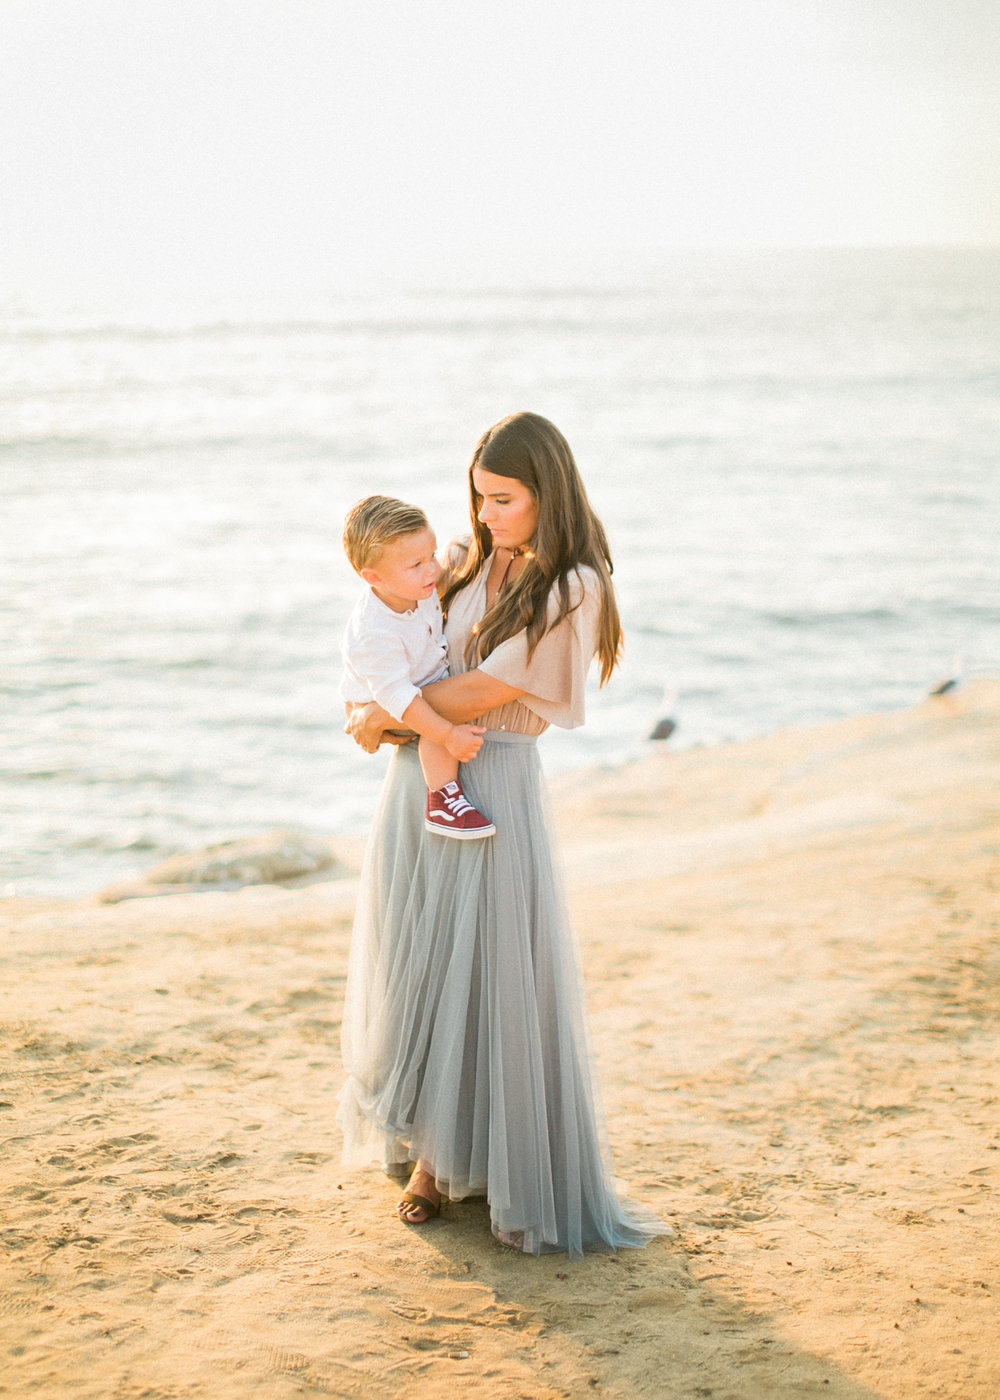 San Diego fine art family photographer - Sunset Cliffs beach family session